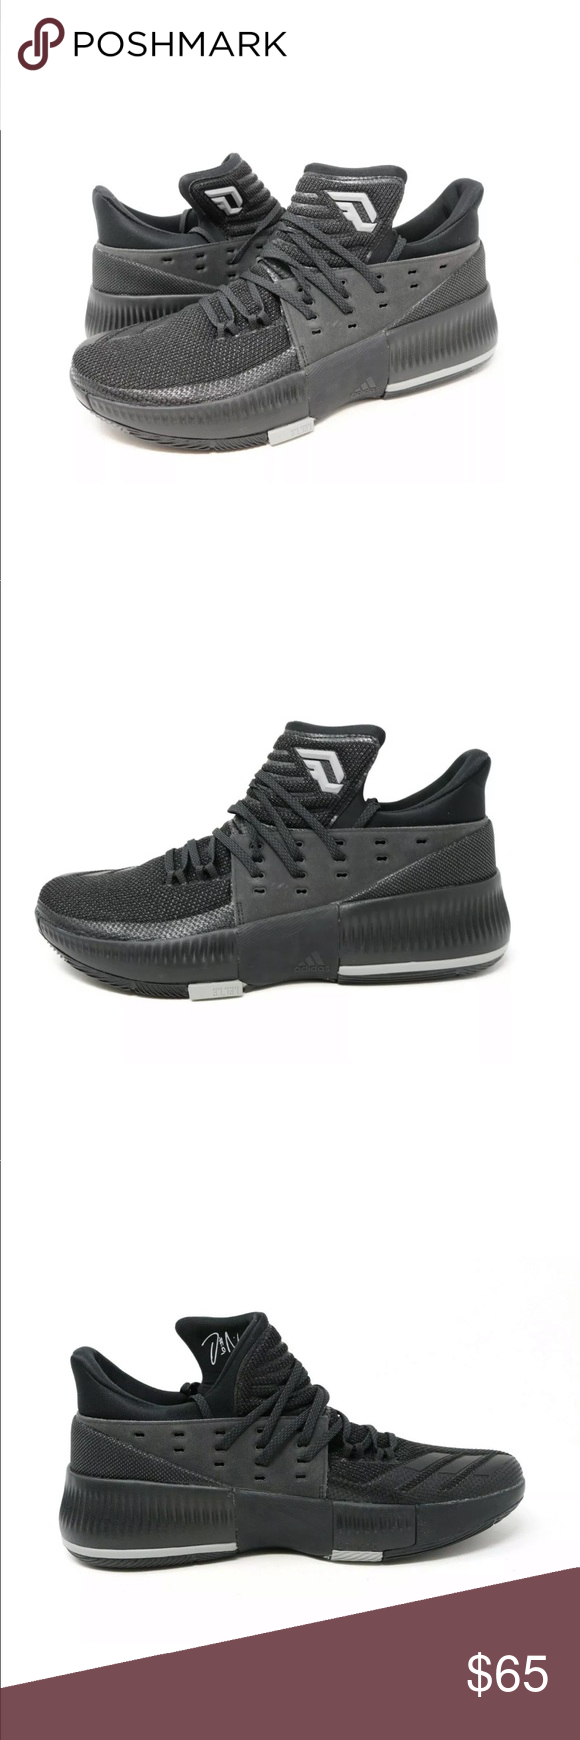 reputable site e79c2 eb500 Adidas Dame 3 D Lillard Basketball Shoe Low BY3206 Adidas Dame 3 D Lillard  Basketball Shoes Low Black. New without box. Please see pictures.